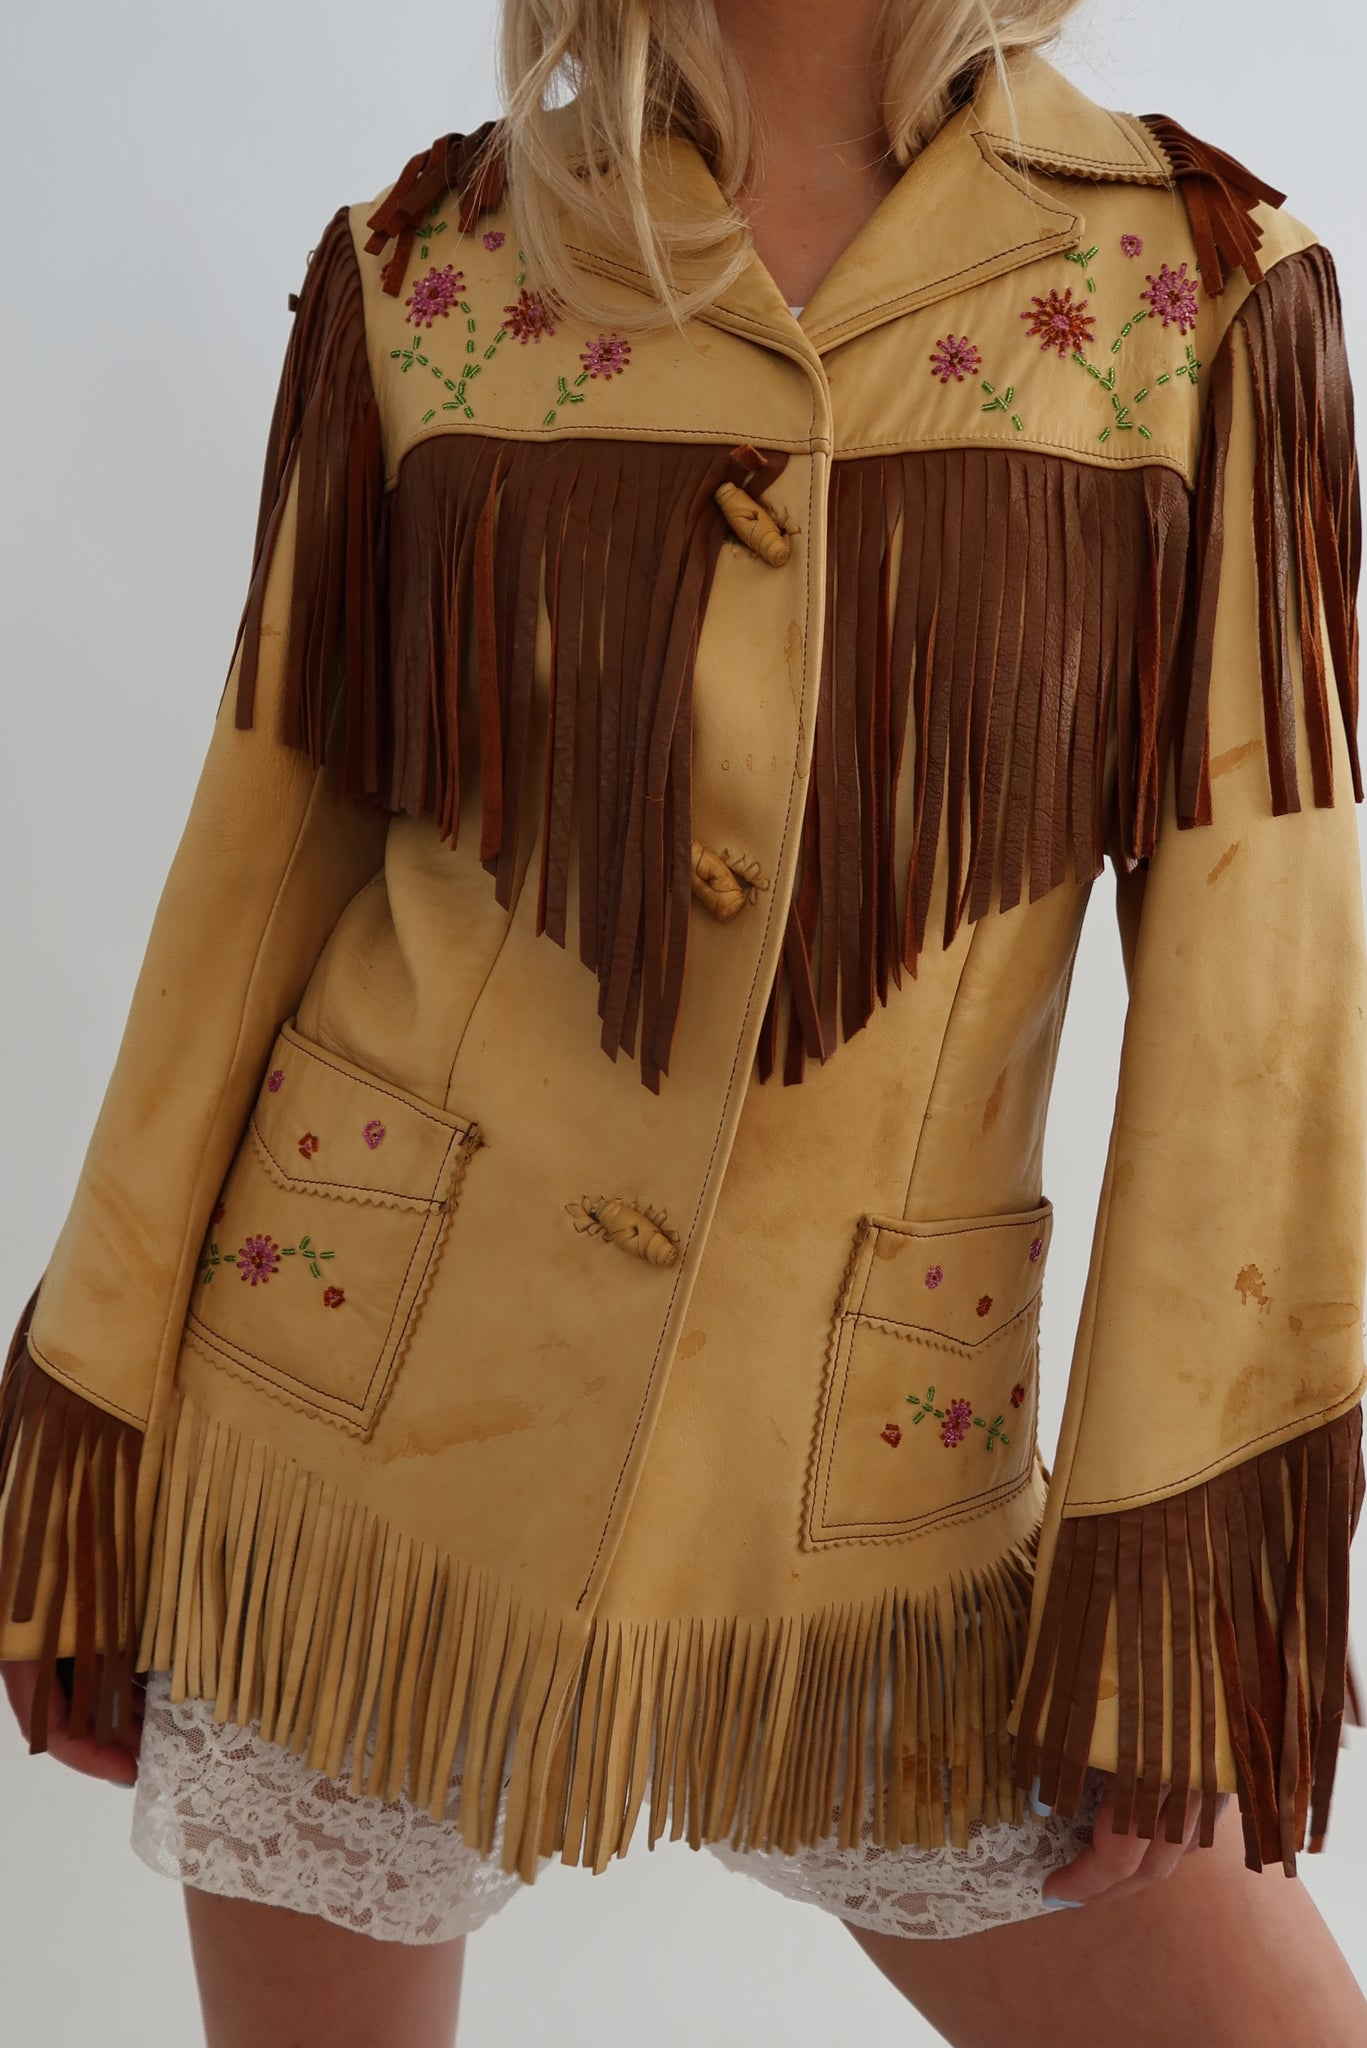 Handmade 70's Fringe Leather Jacket (S-M)